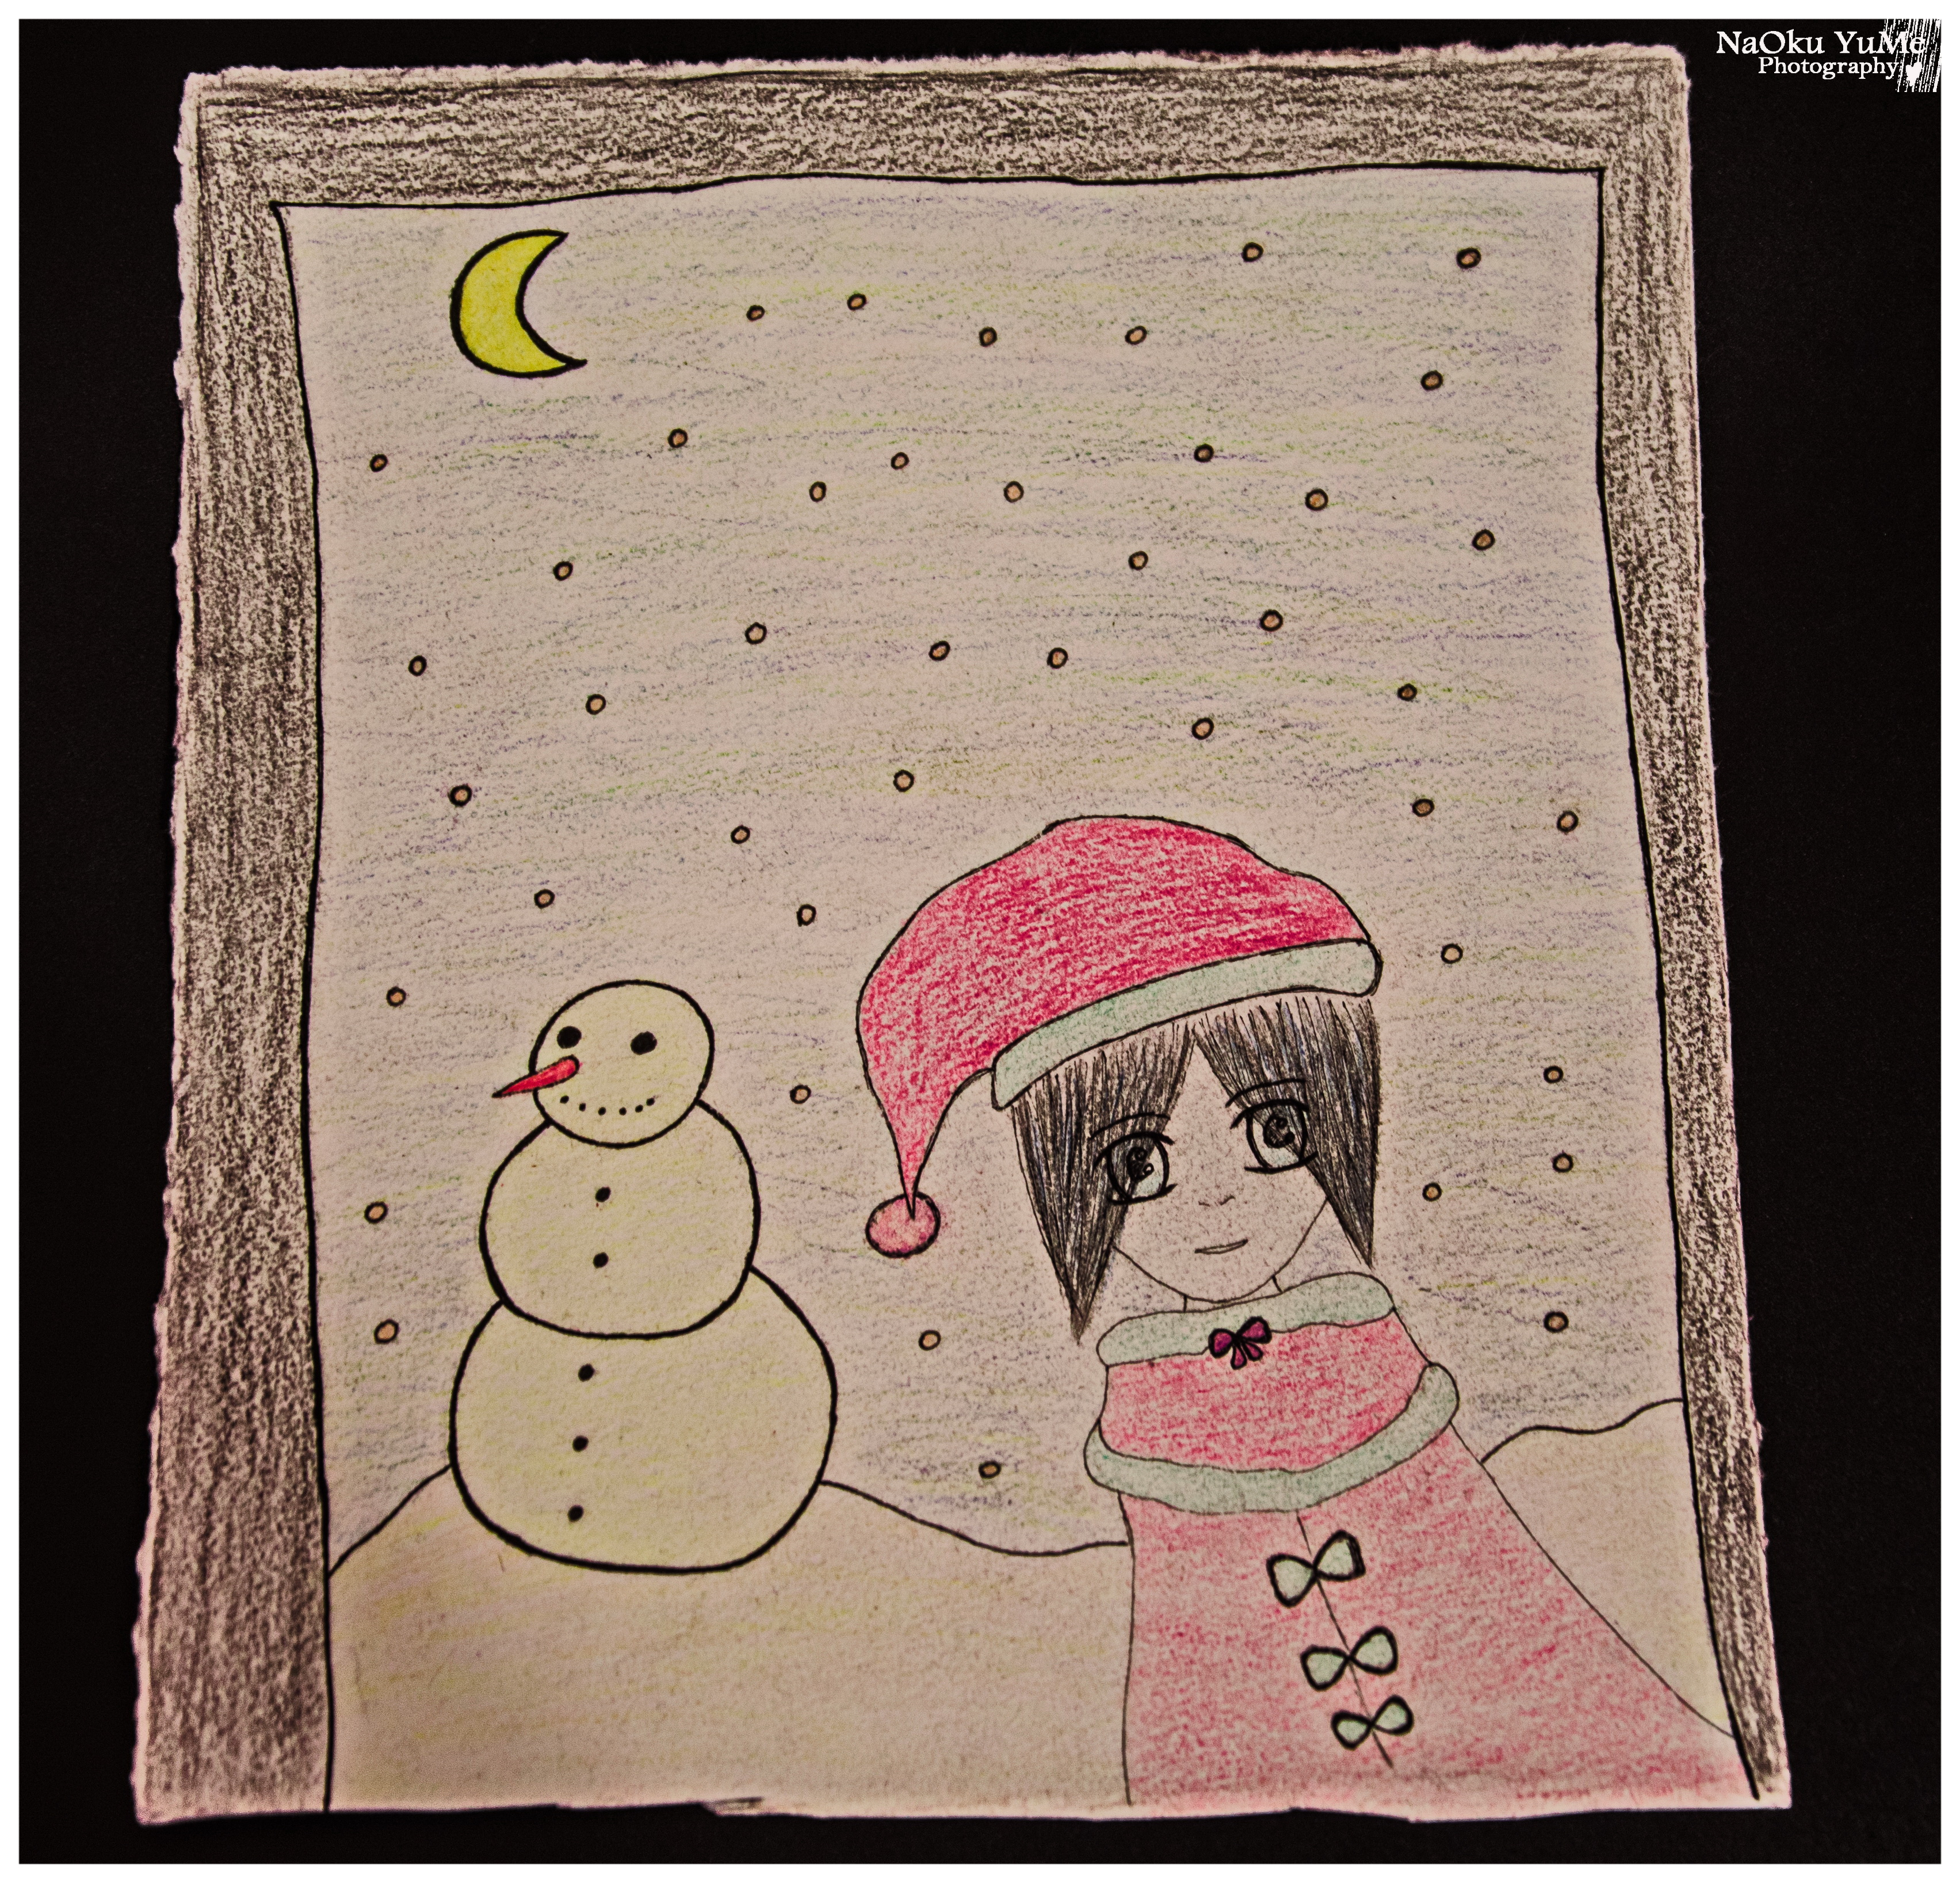 A girl and a snowman